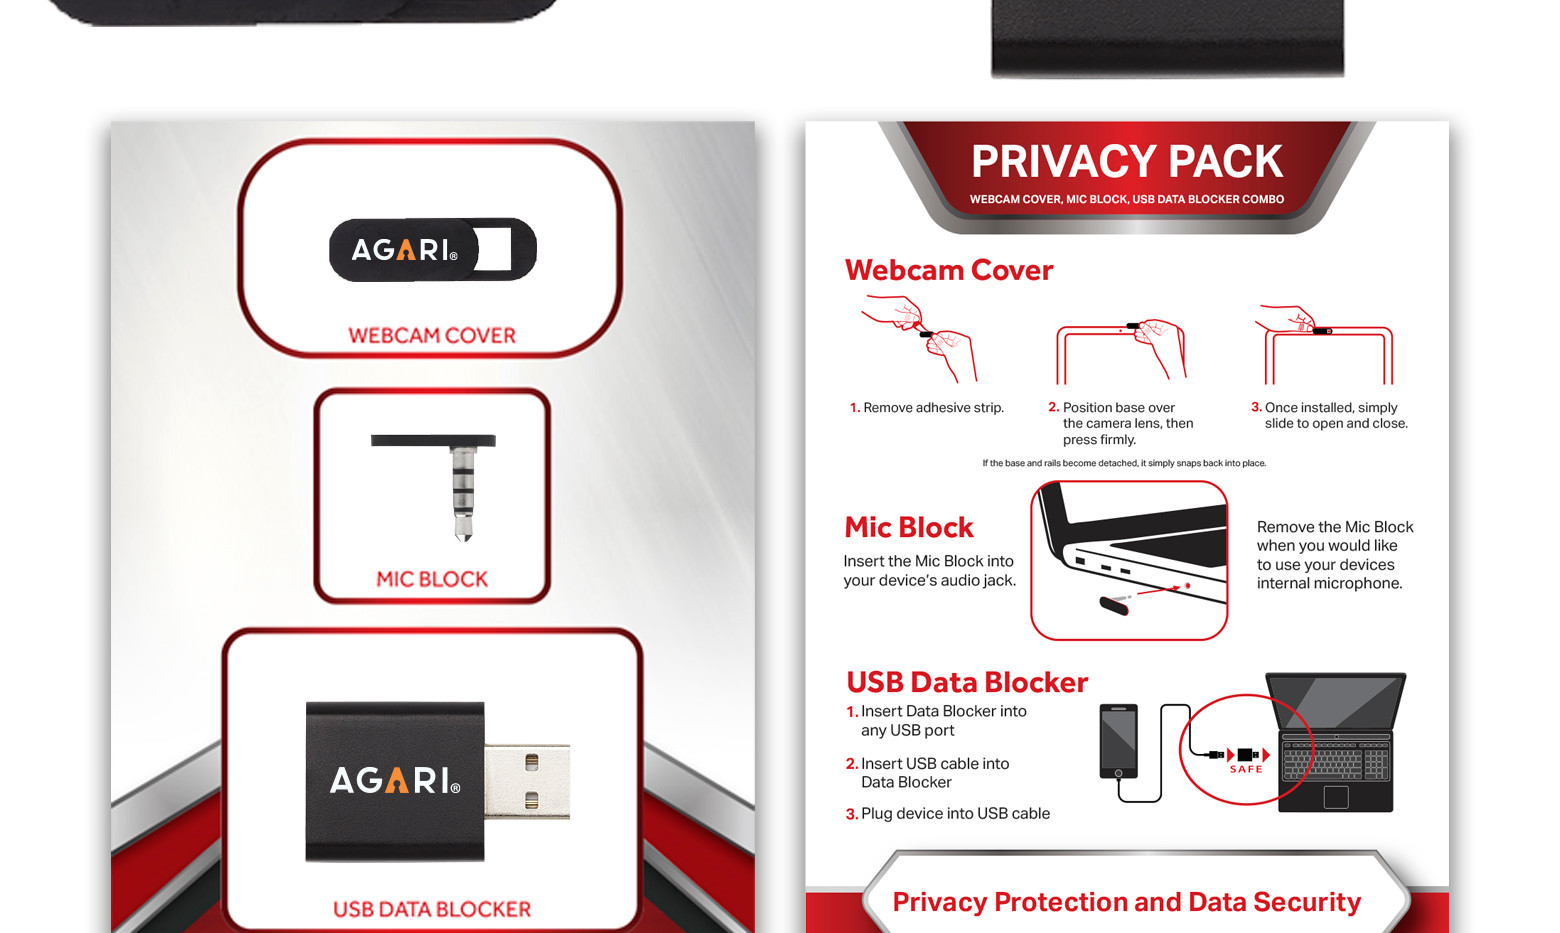 Agari Privacy 3 Pack standard.jpg